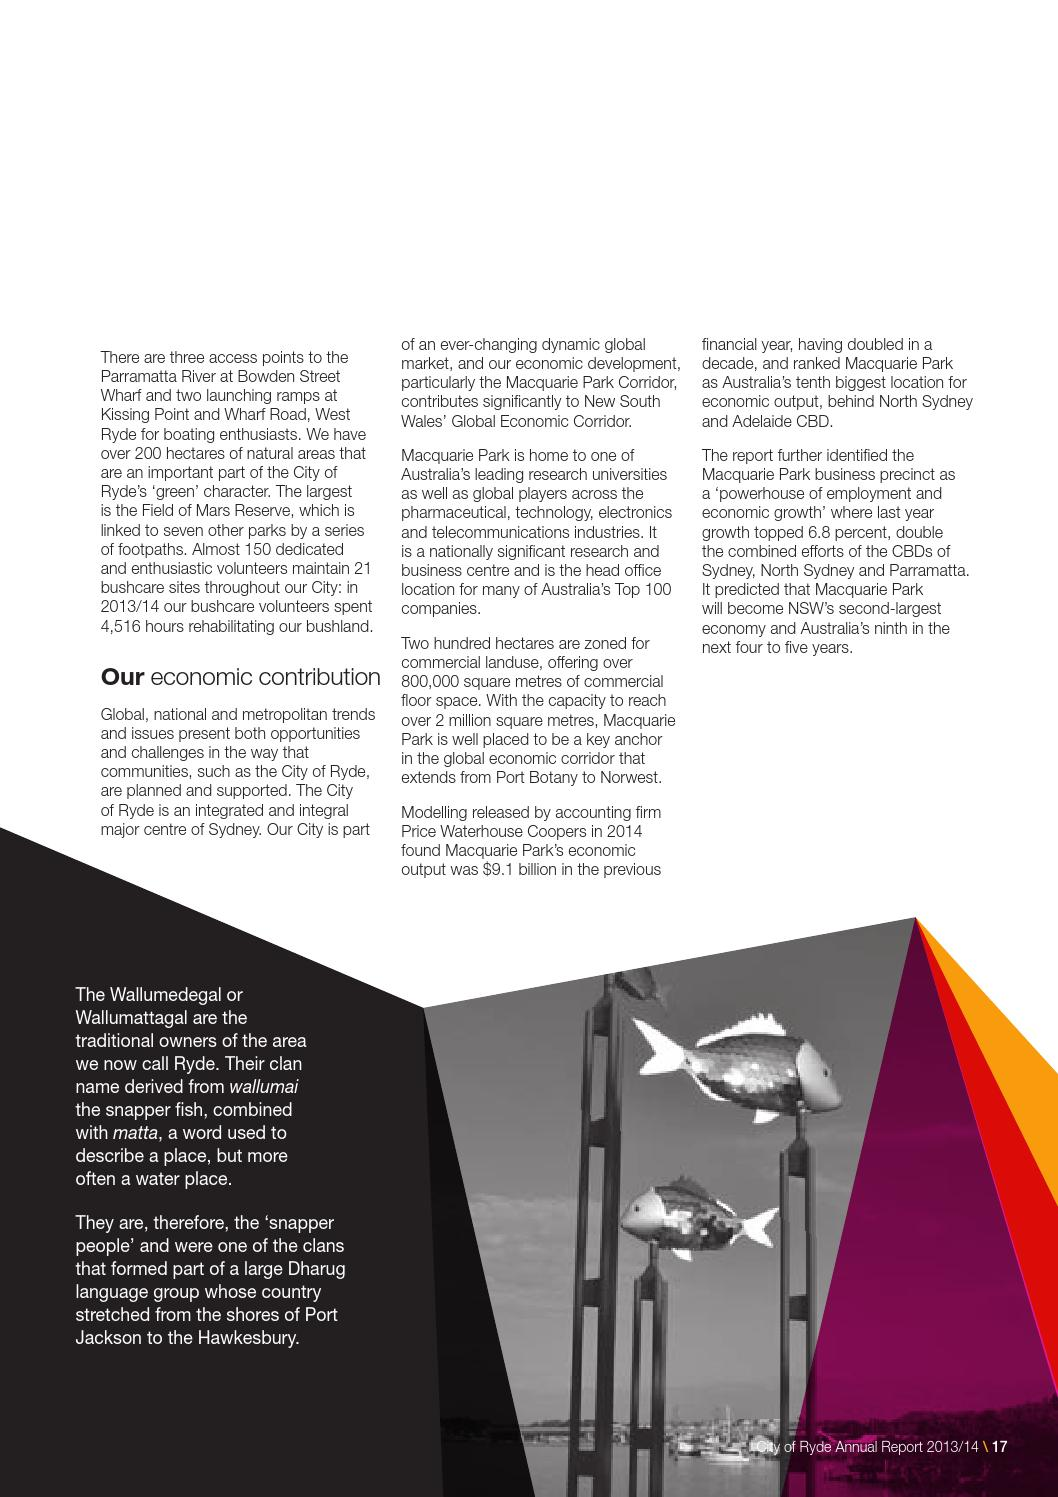 City of Ryde Annual Report 2013/14 by City of Ryde - issuu